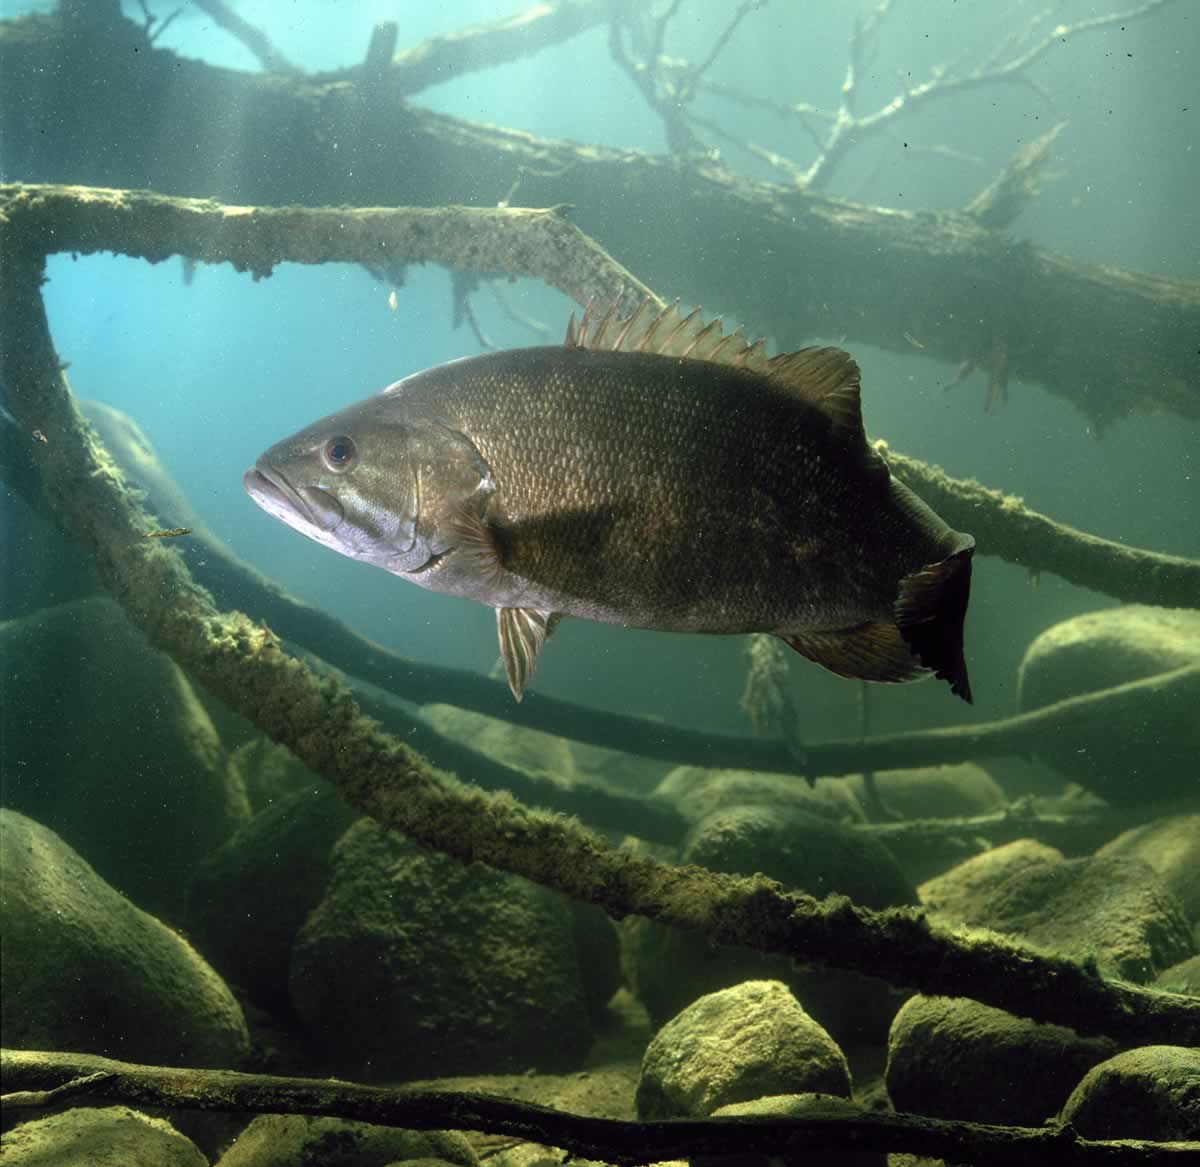 Underwater photo of a smallmouth bass